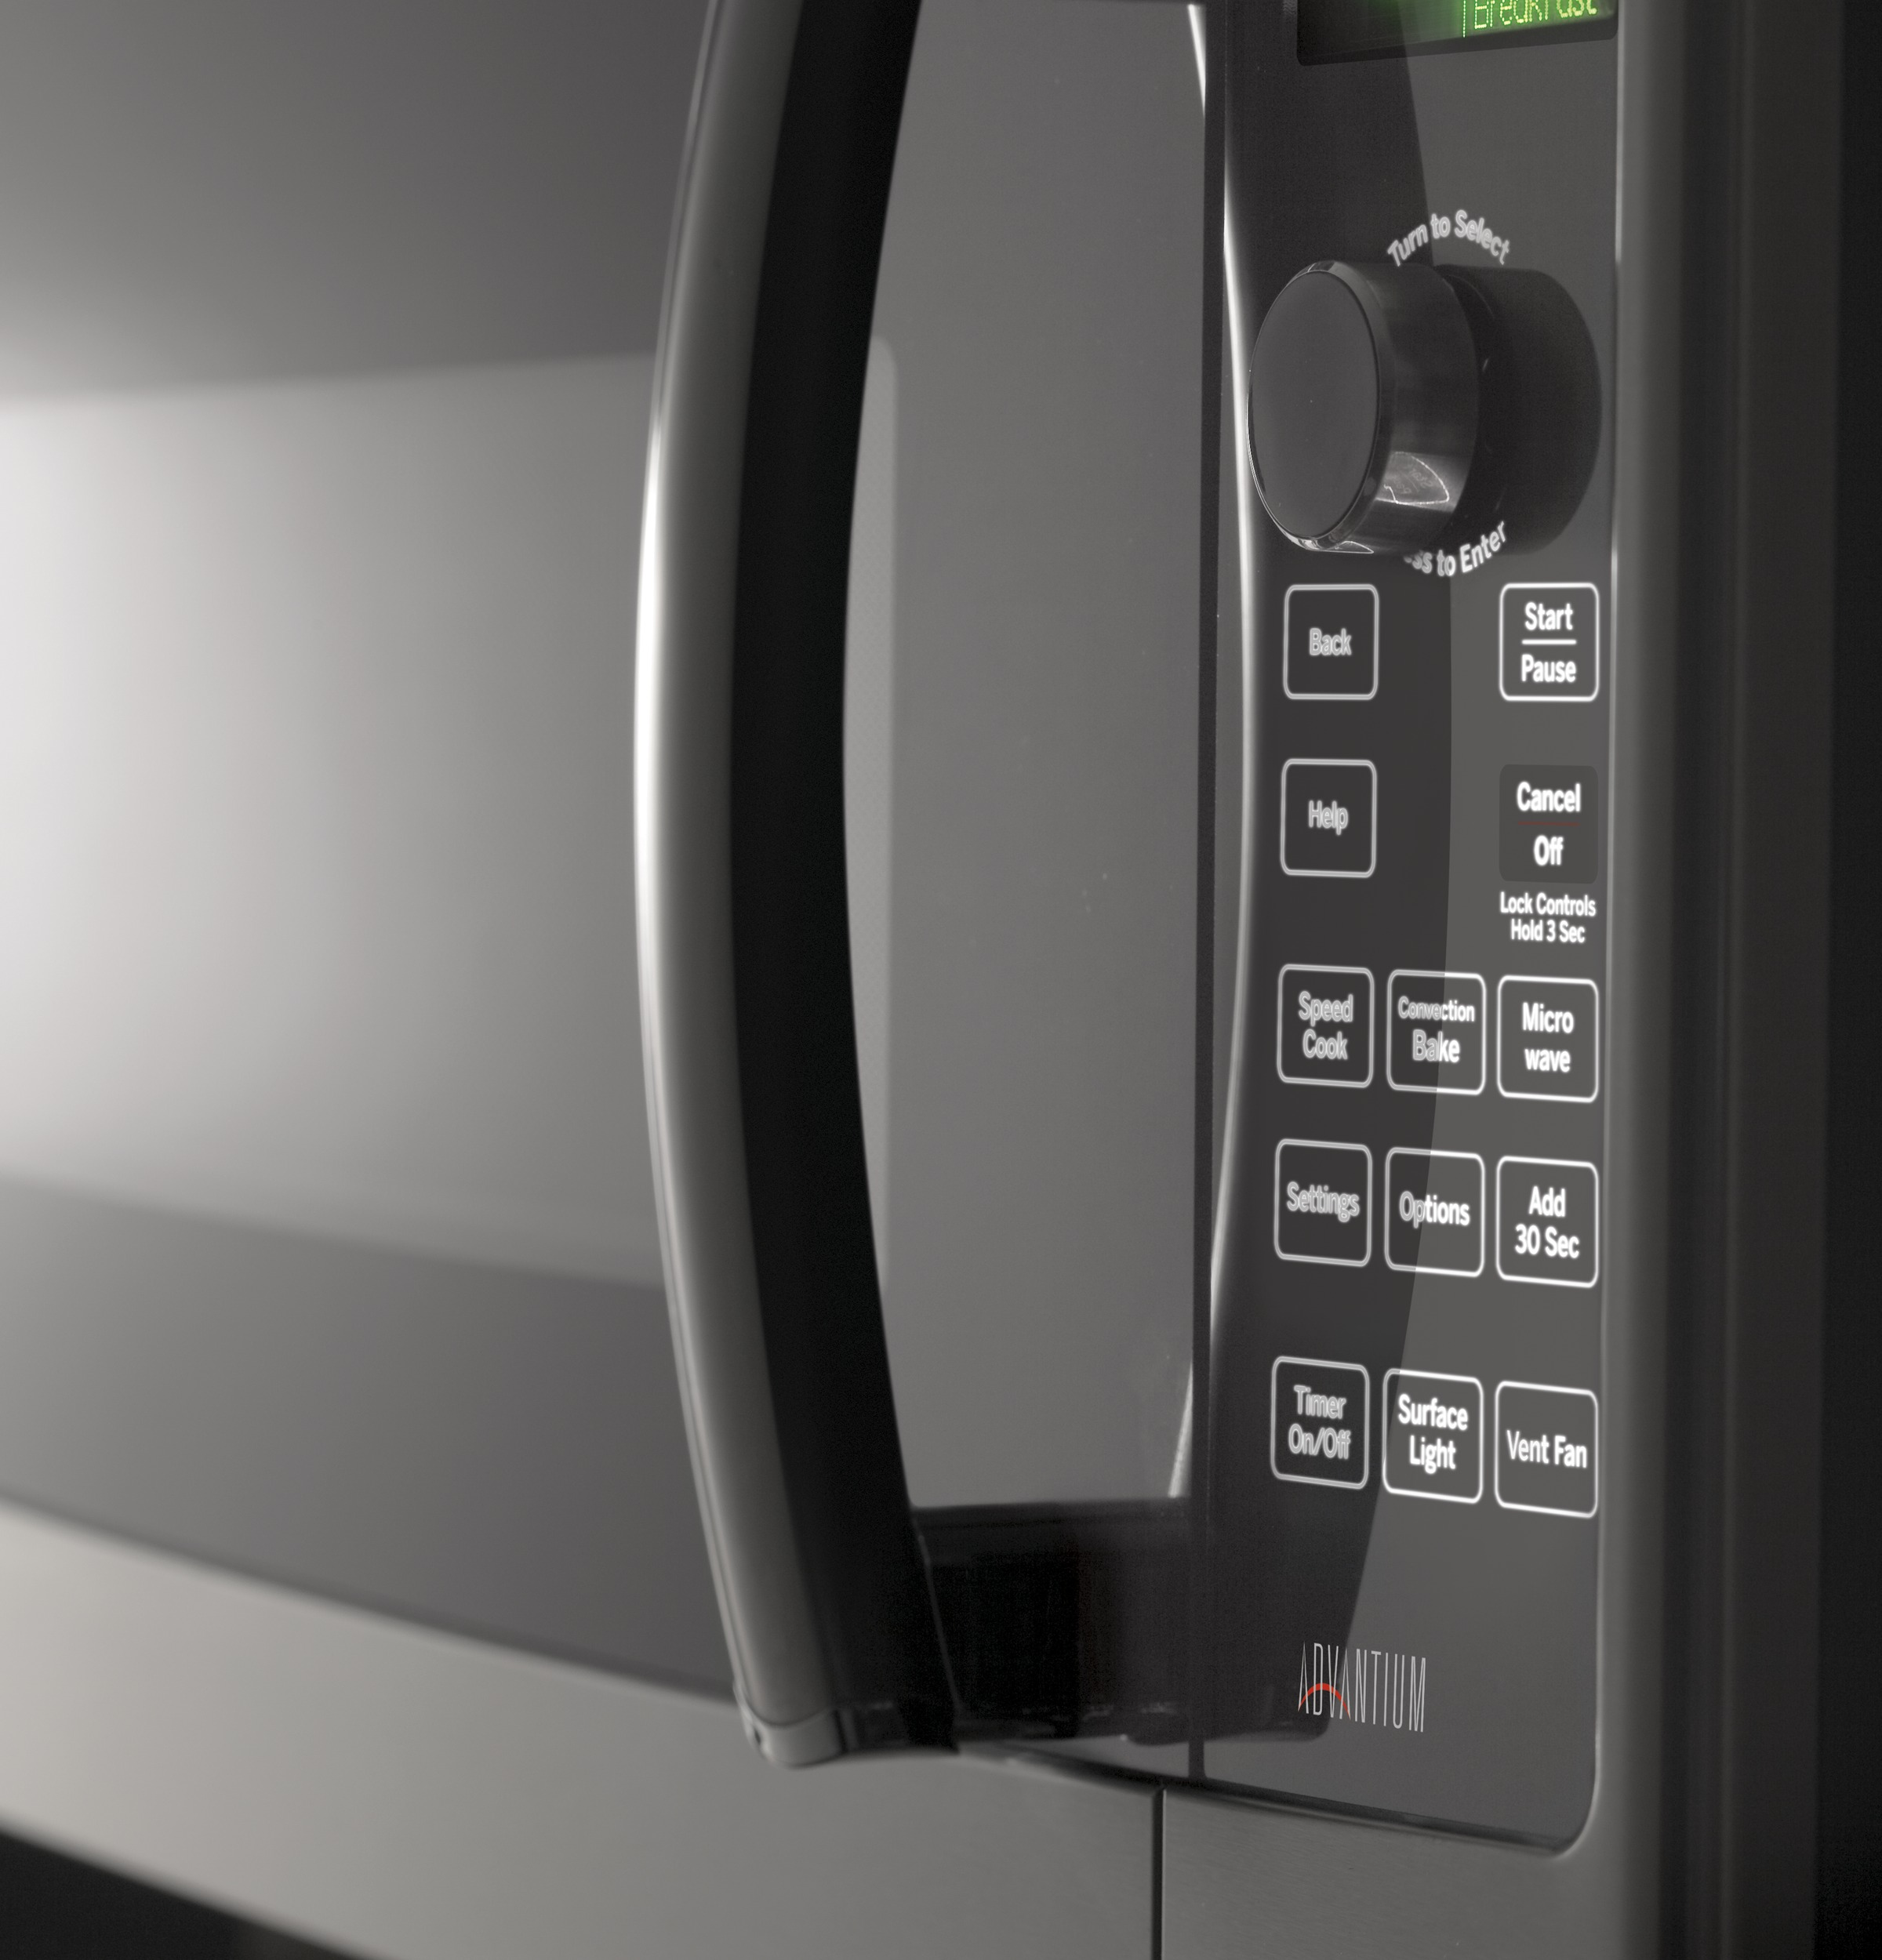 Microwave Energy Was A Major Breakthrough To The Modern Day Home When It First Introduced In 1960s Scientific Terms Countertop